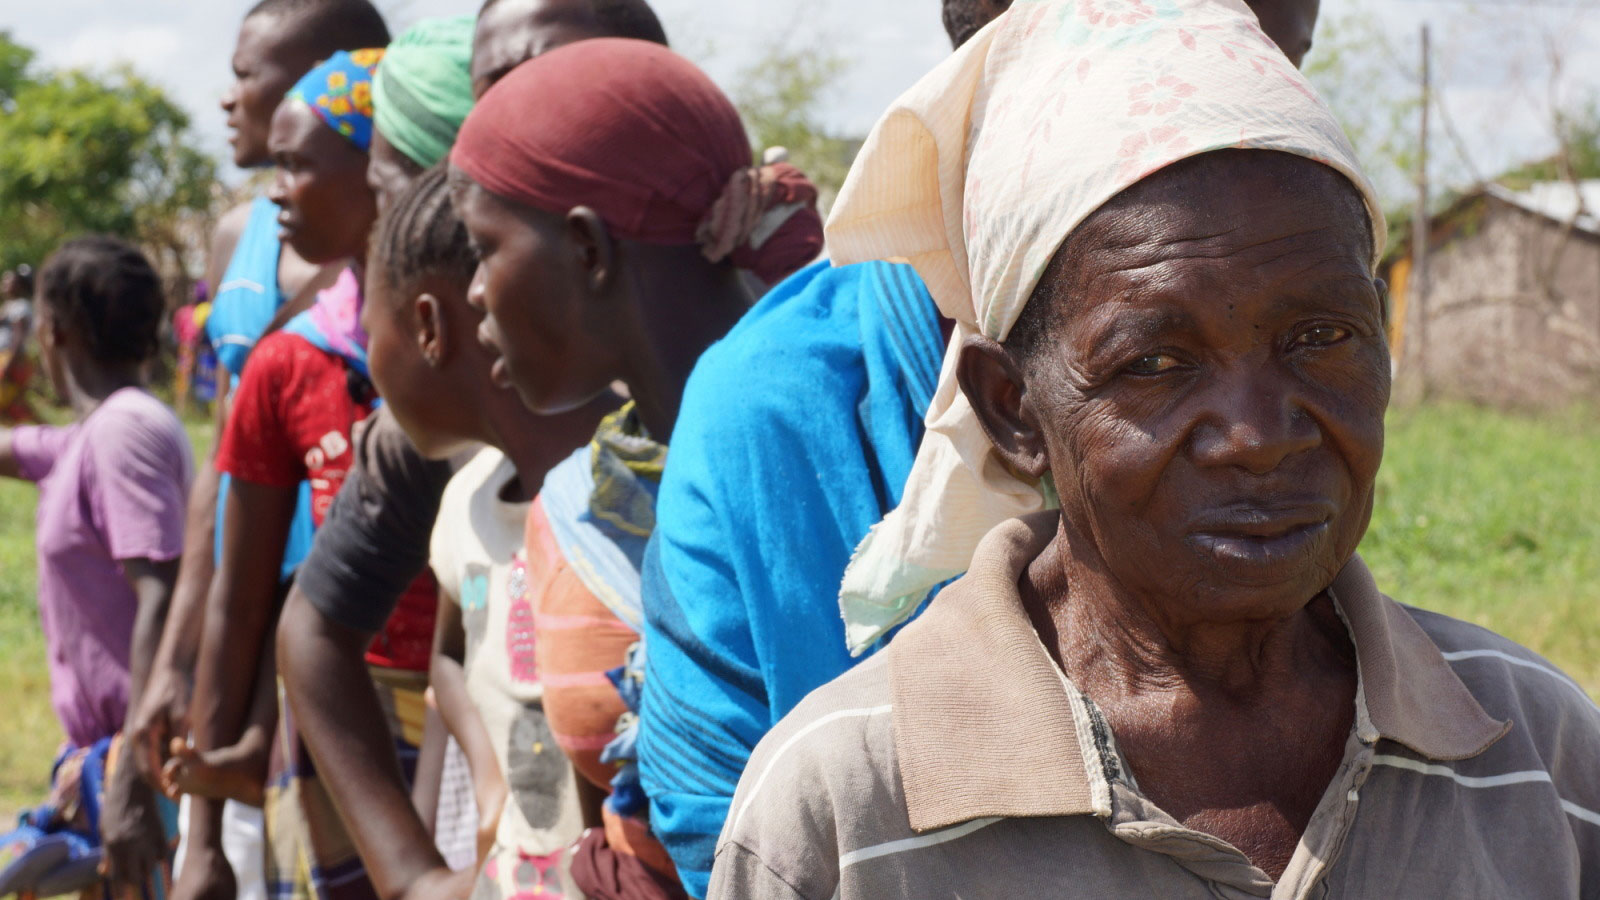 An-older-man-stands-in-line-waiting-for-humanitarian-aid-following-Cyclone-Idai-in-Mozambique